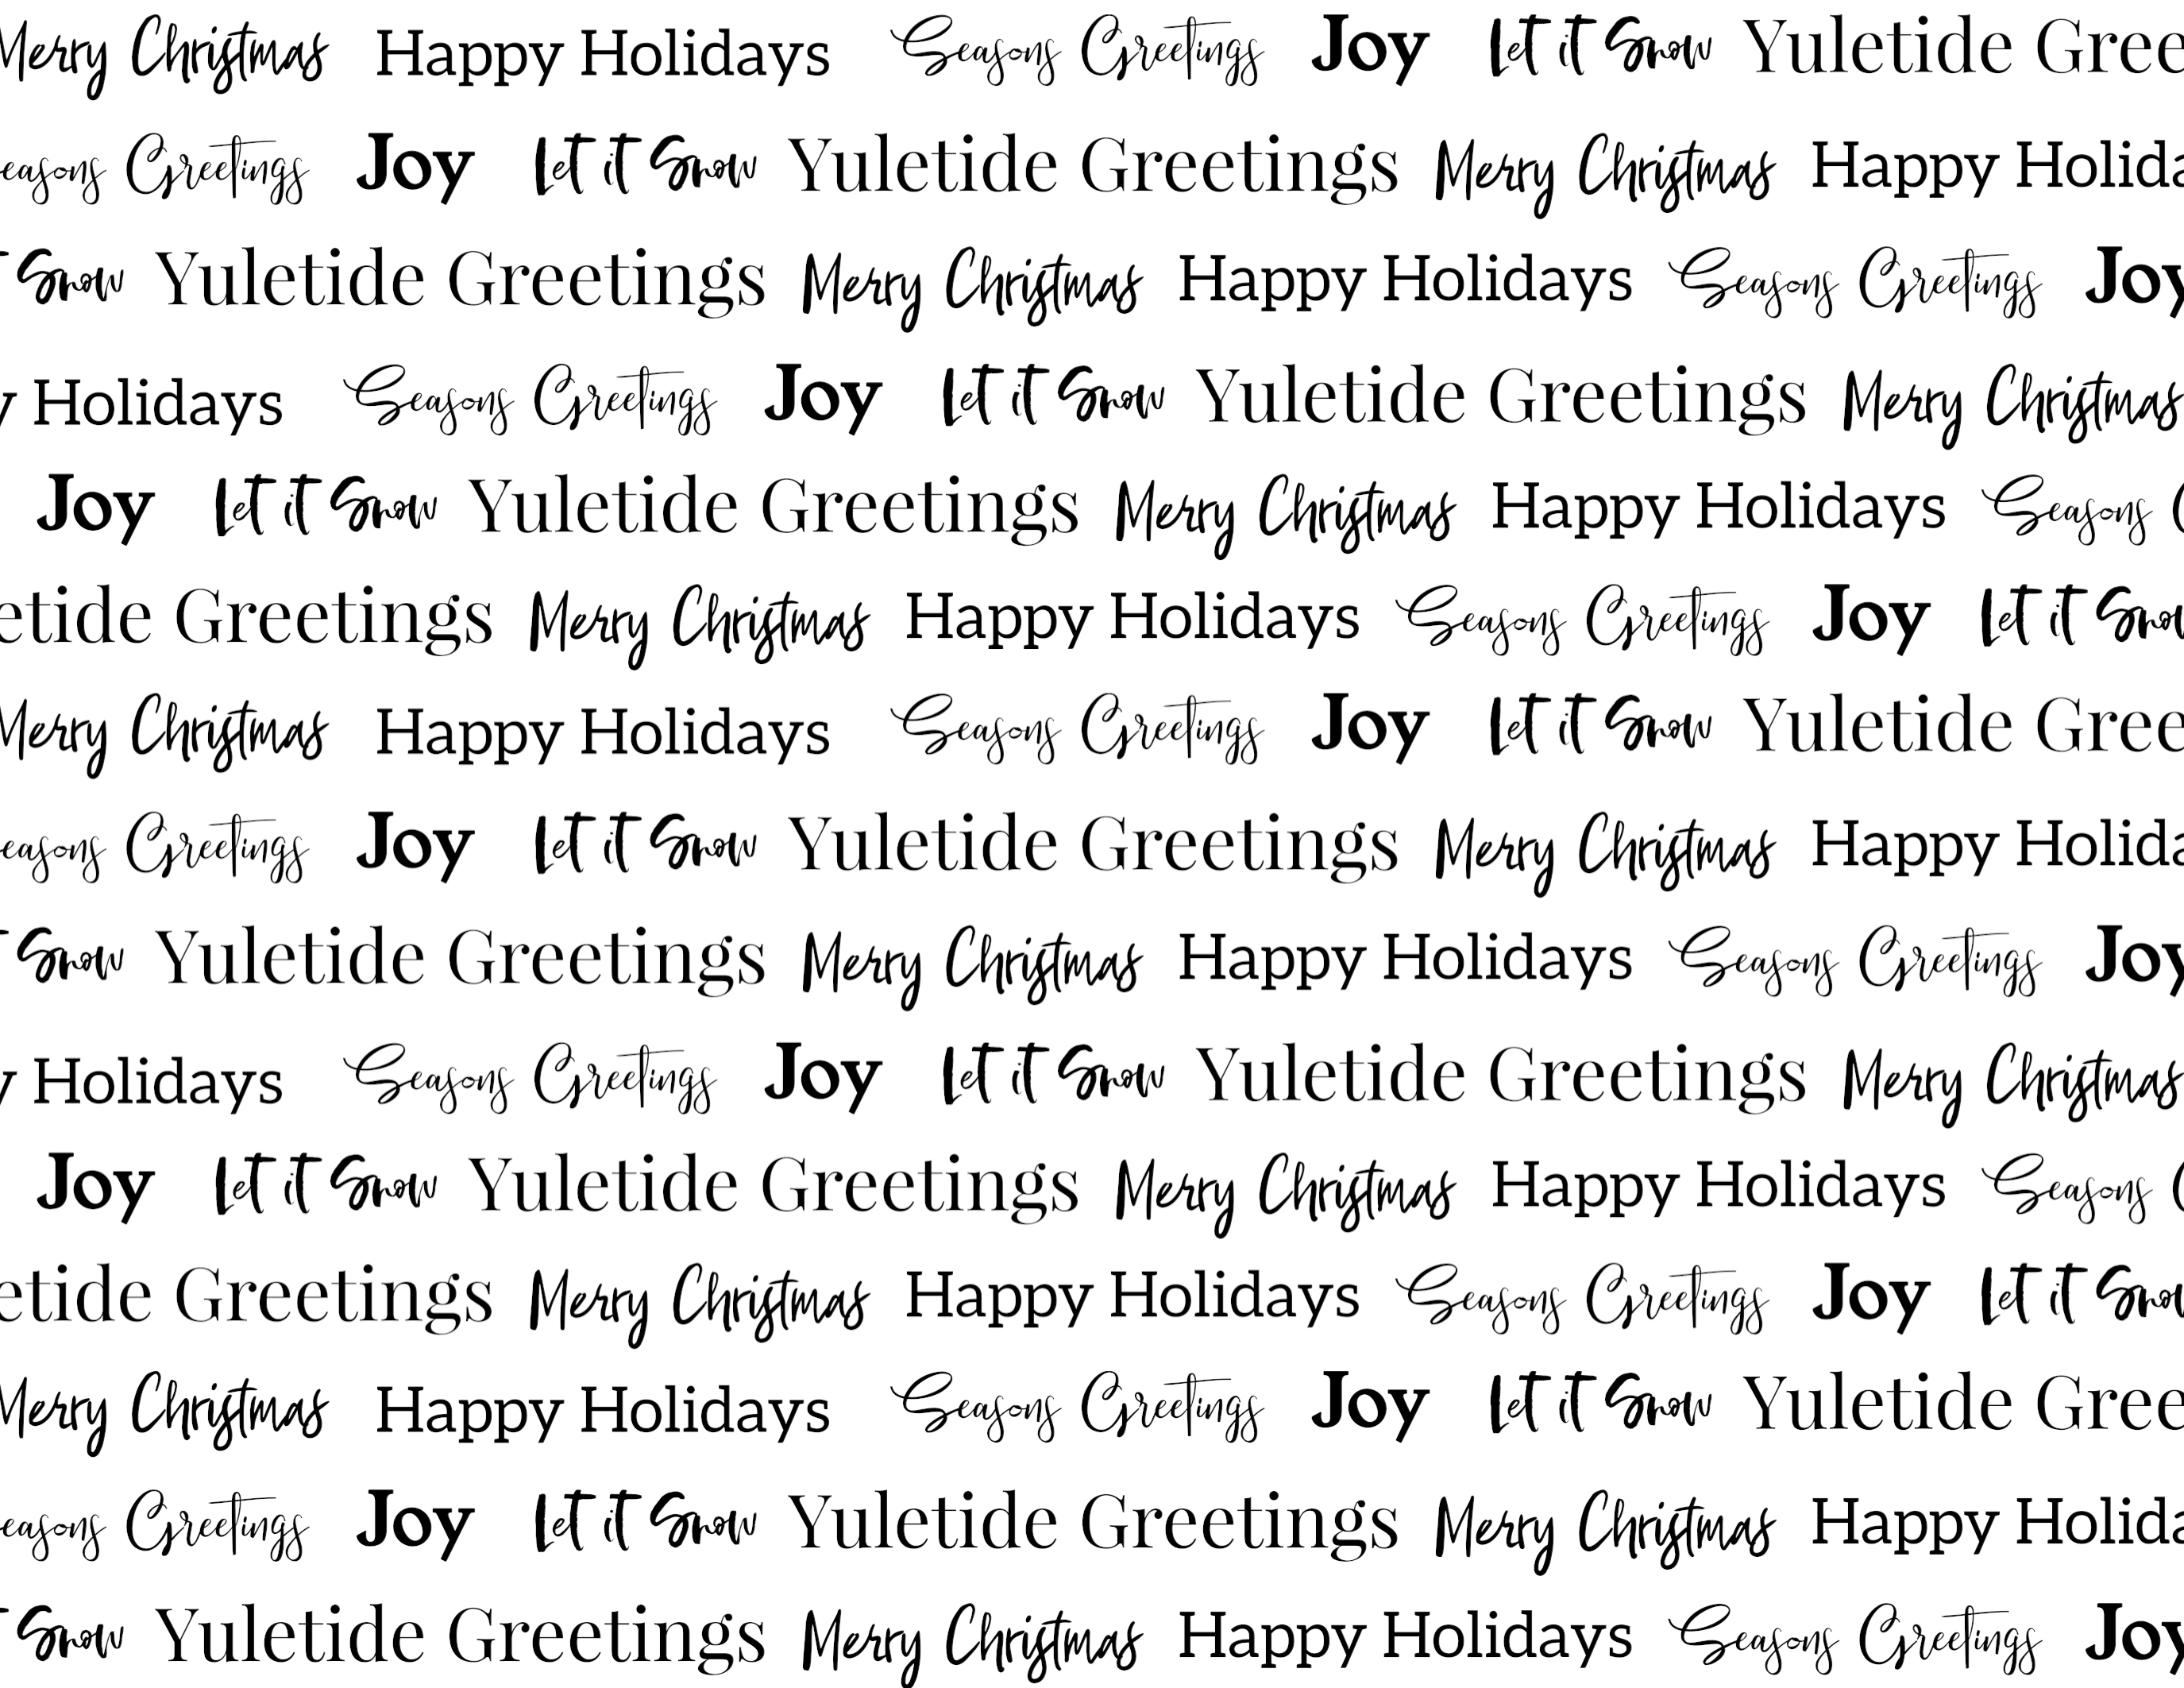 It is a picture of Free Printable Christmas Paper regarding pdf